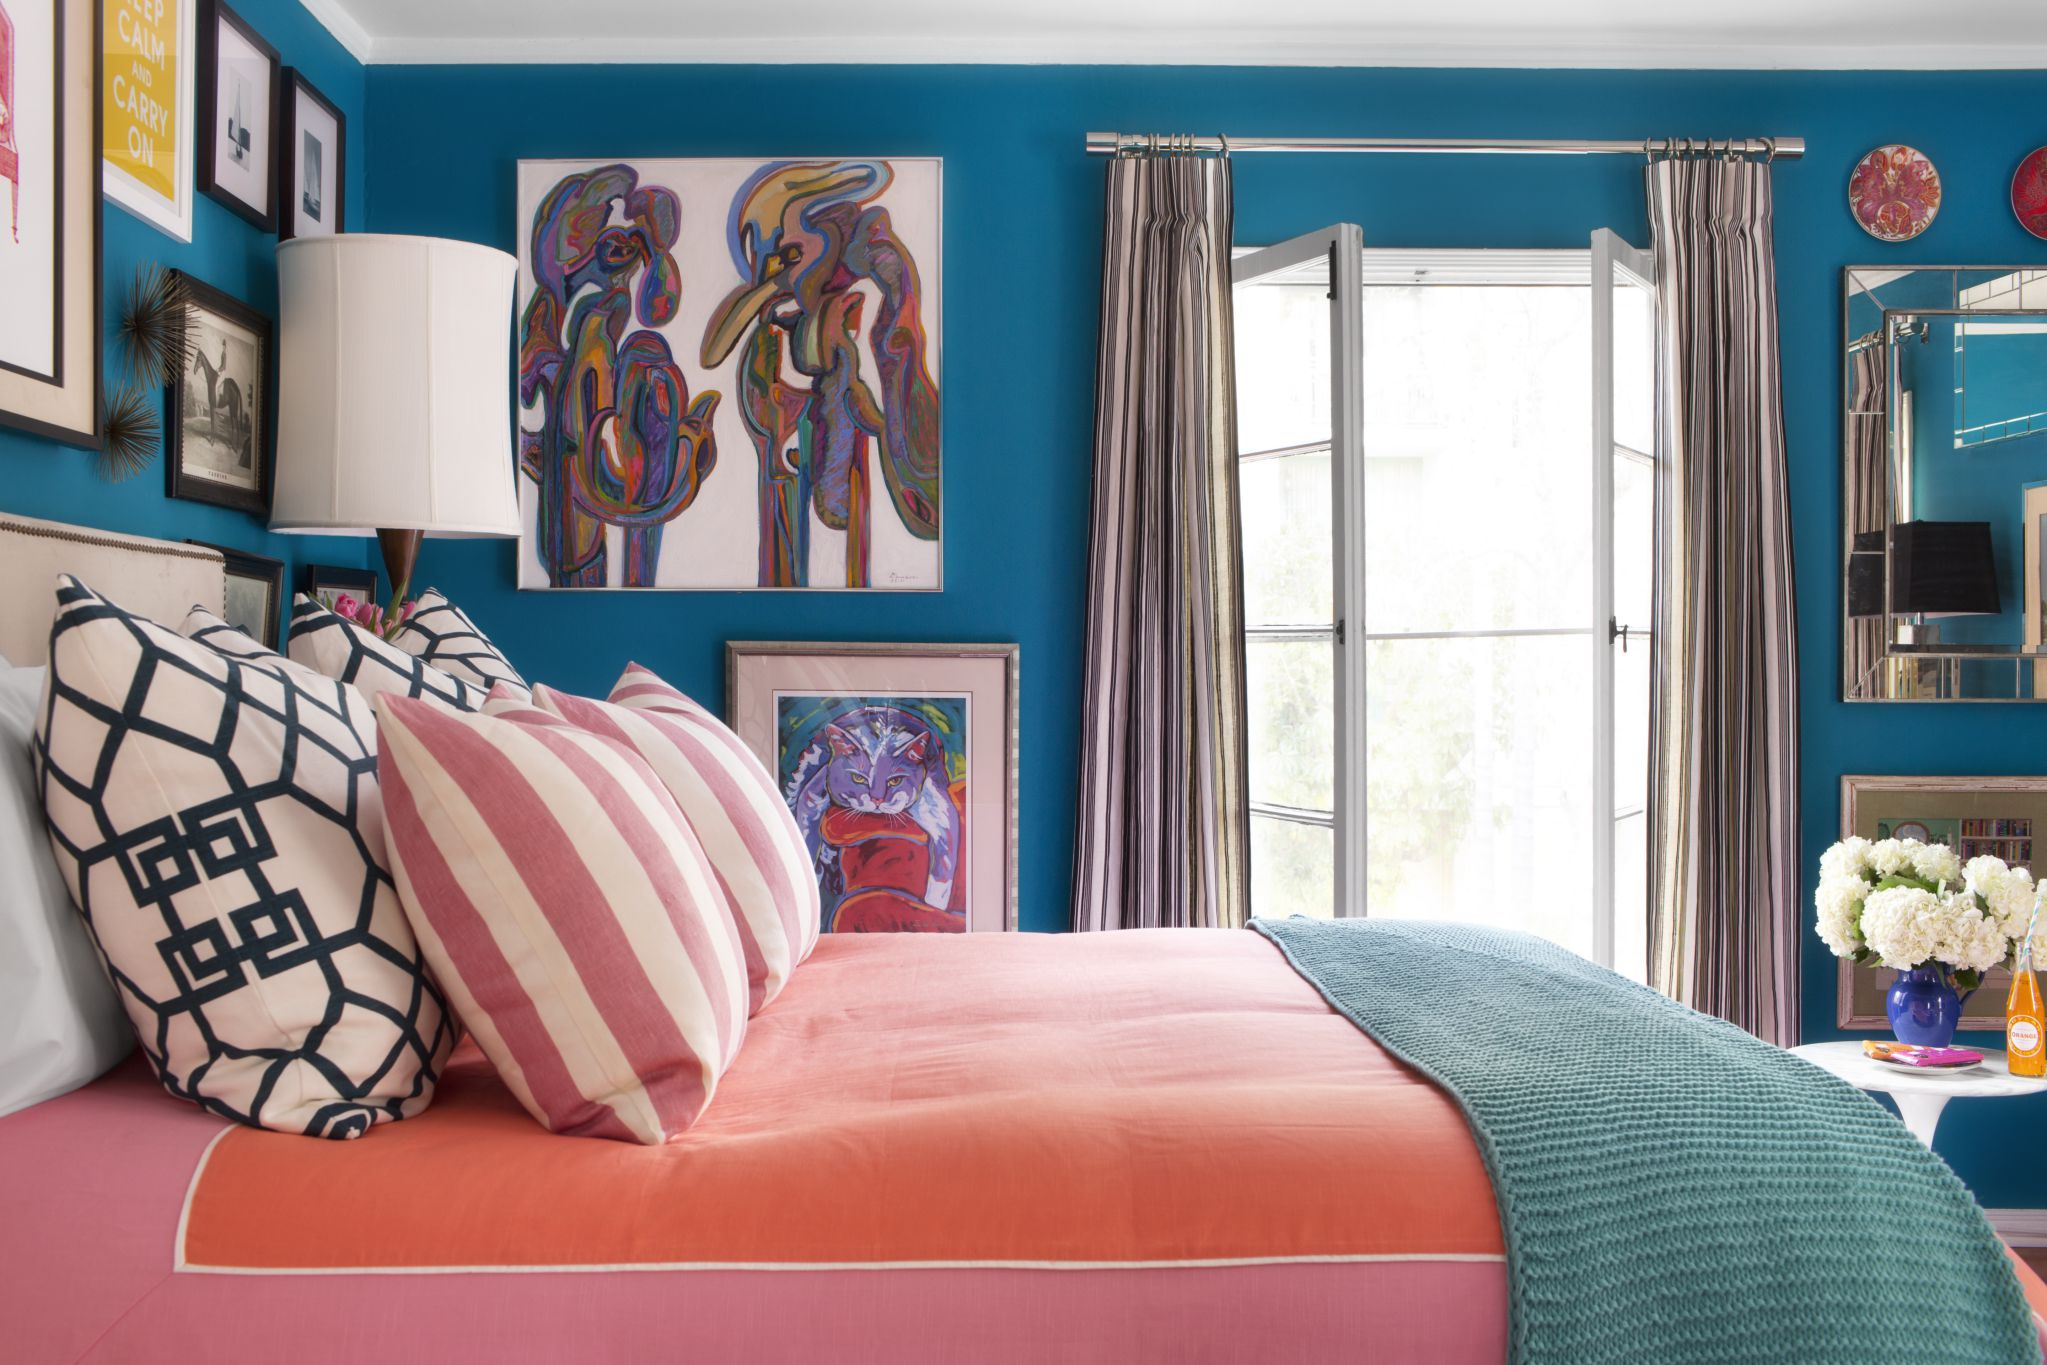 Amazing Painting on Blue Wall Paint Plus Comfortable Bed Style